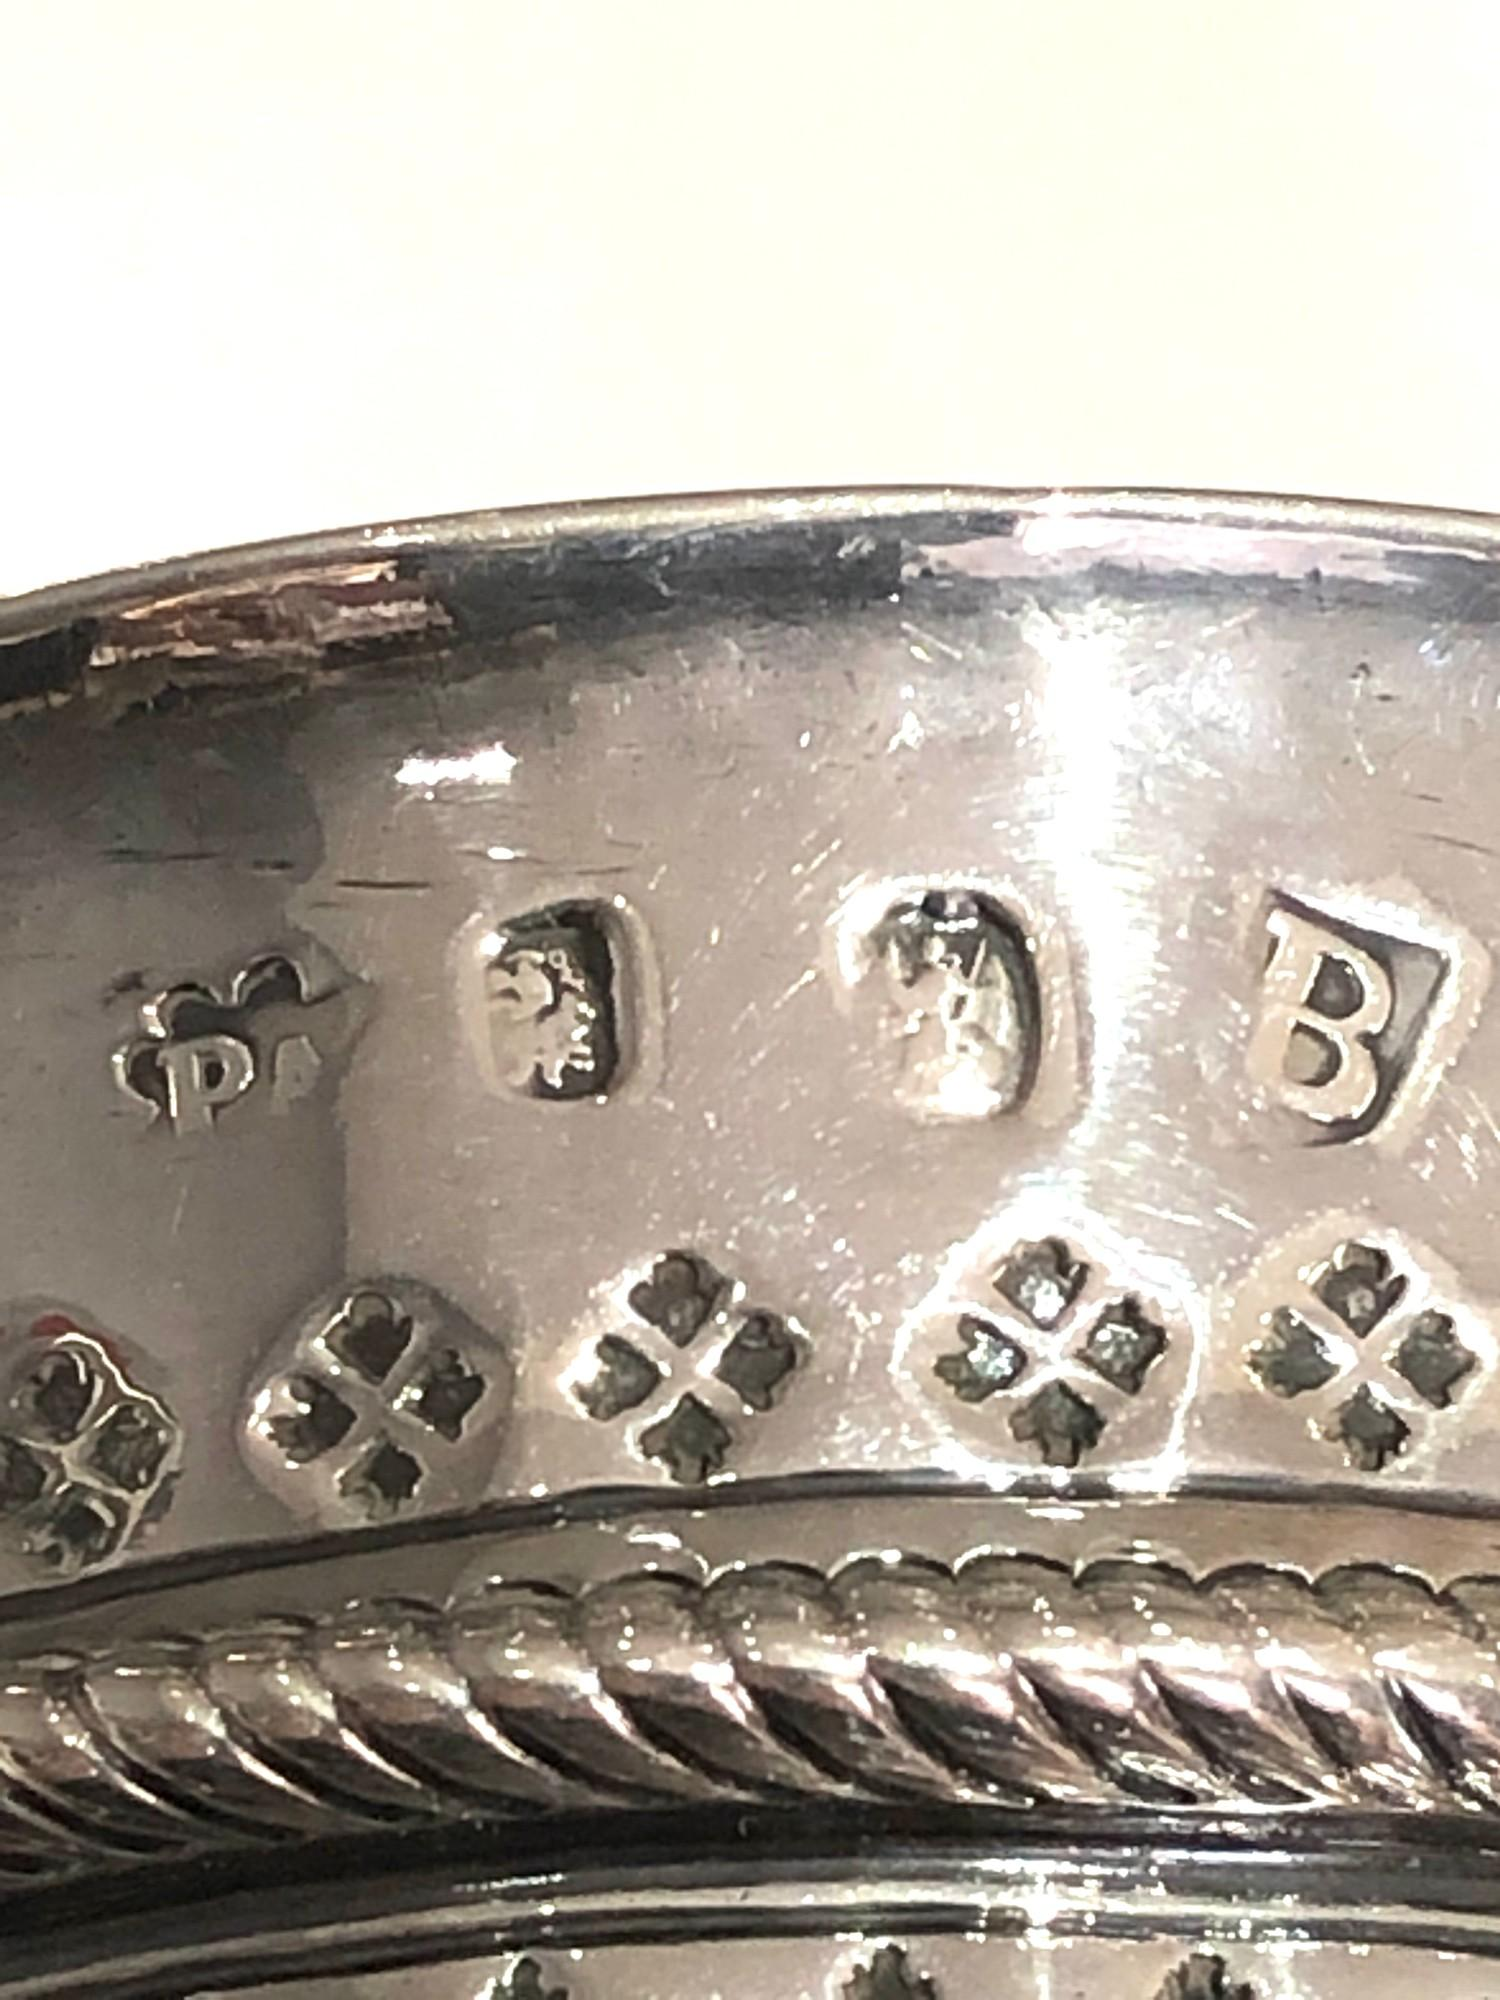 Rare George 1 silver Porringer full london silver hallmarks date letter B for 1717 measures approx - Image 7 of 9